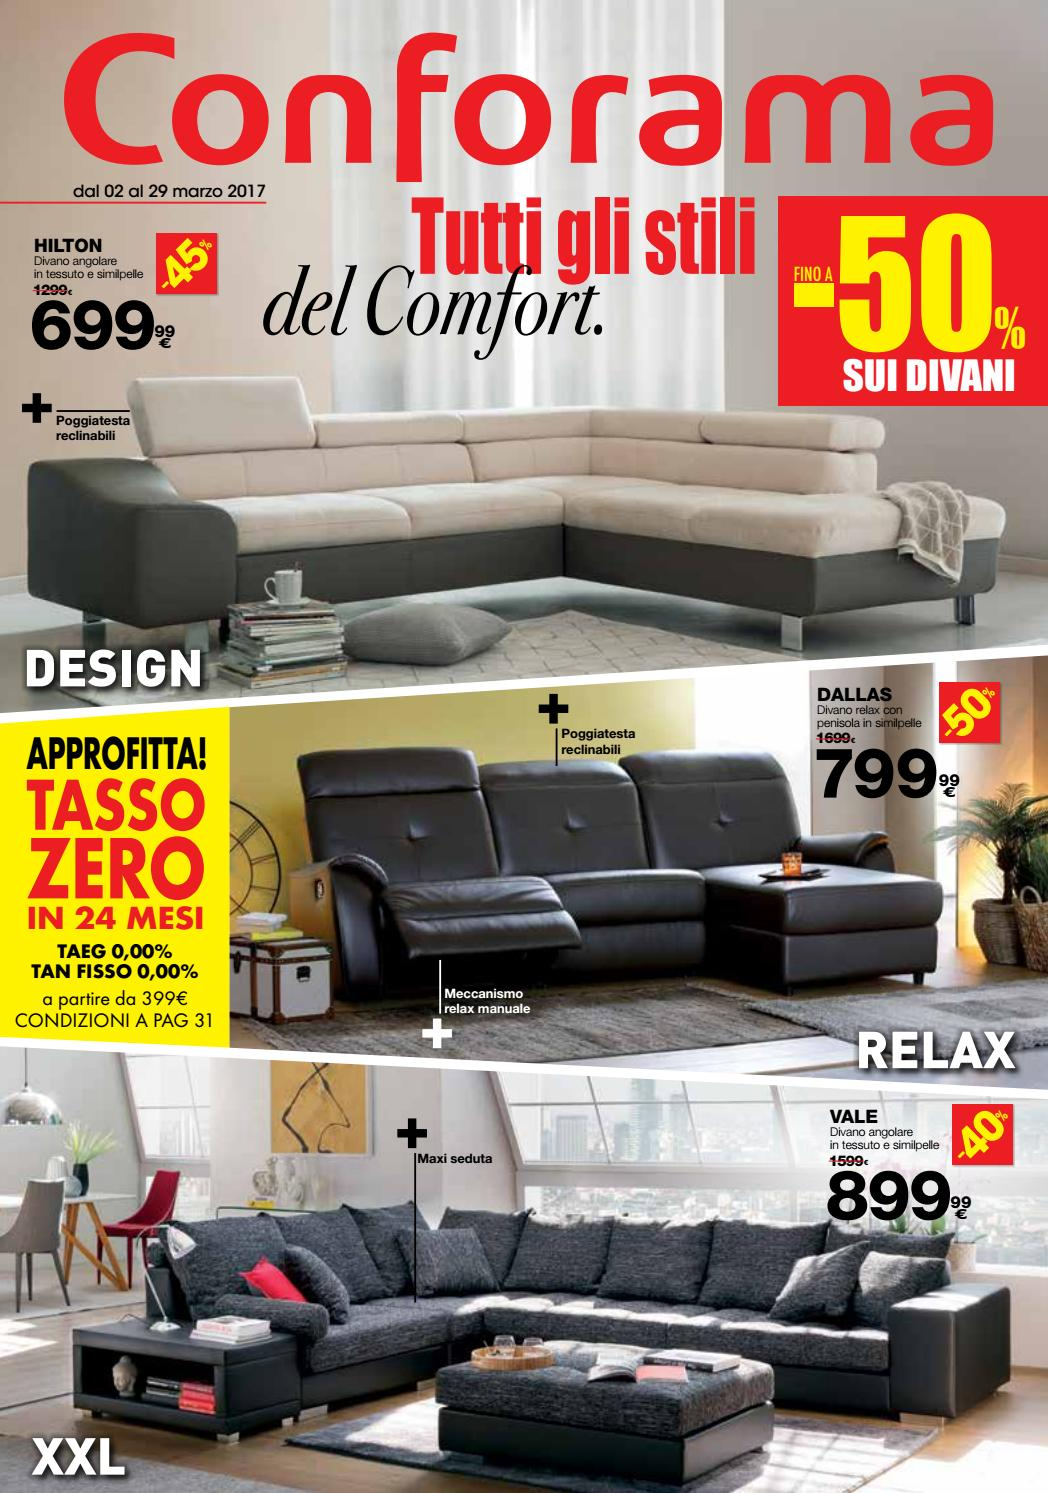 Divano Componibile Conforama Conforama 29mar By Best Of Volantinoweb Issuu